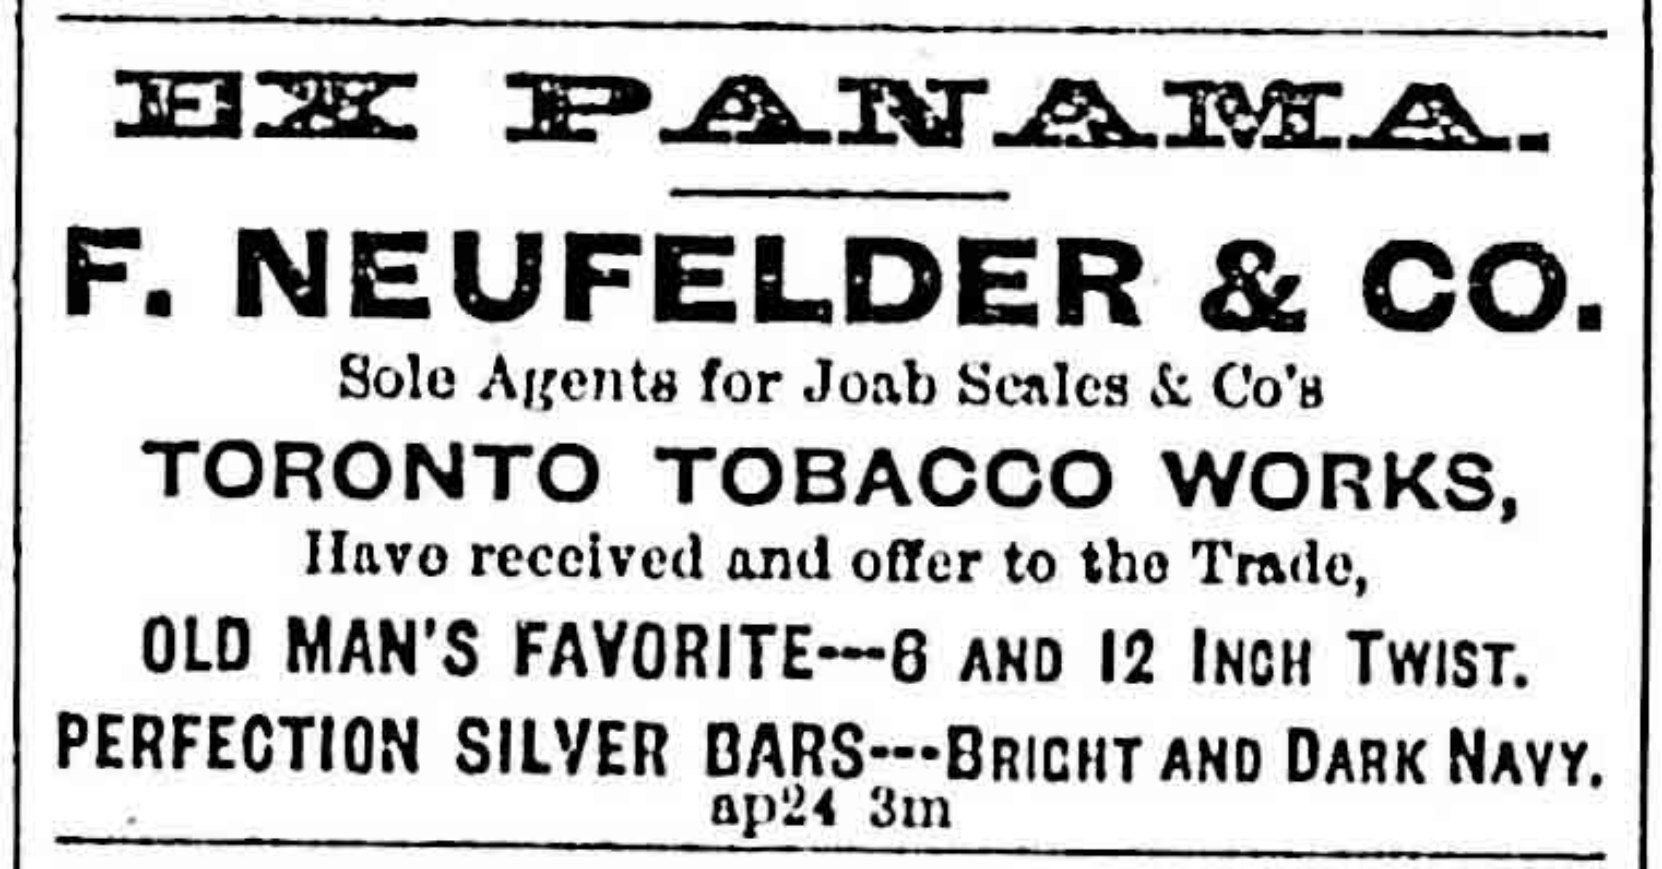 Advertisement for Felix Neufelder & Co., 1878.